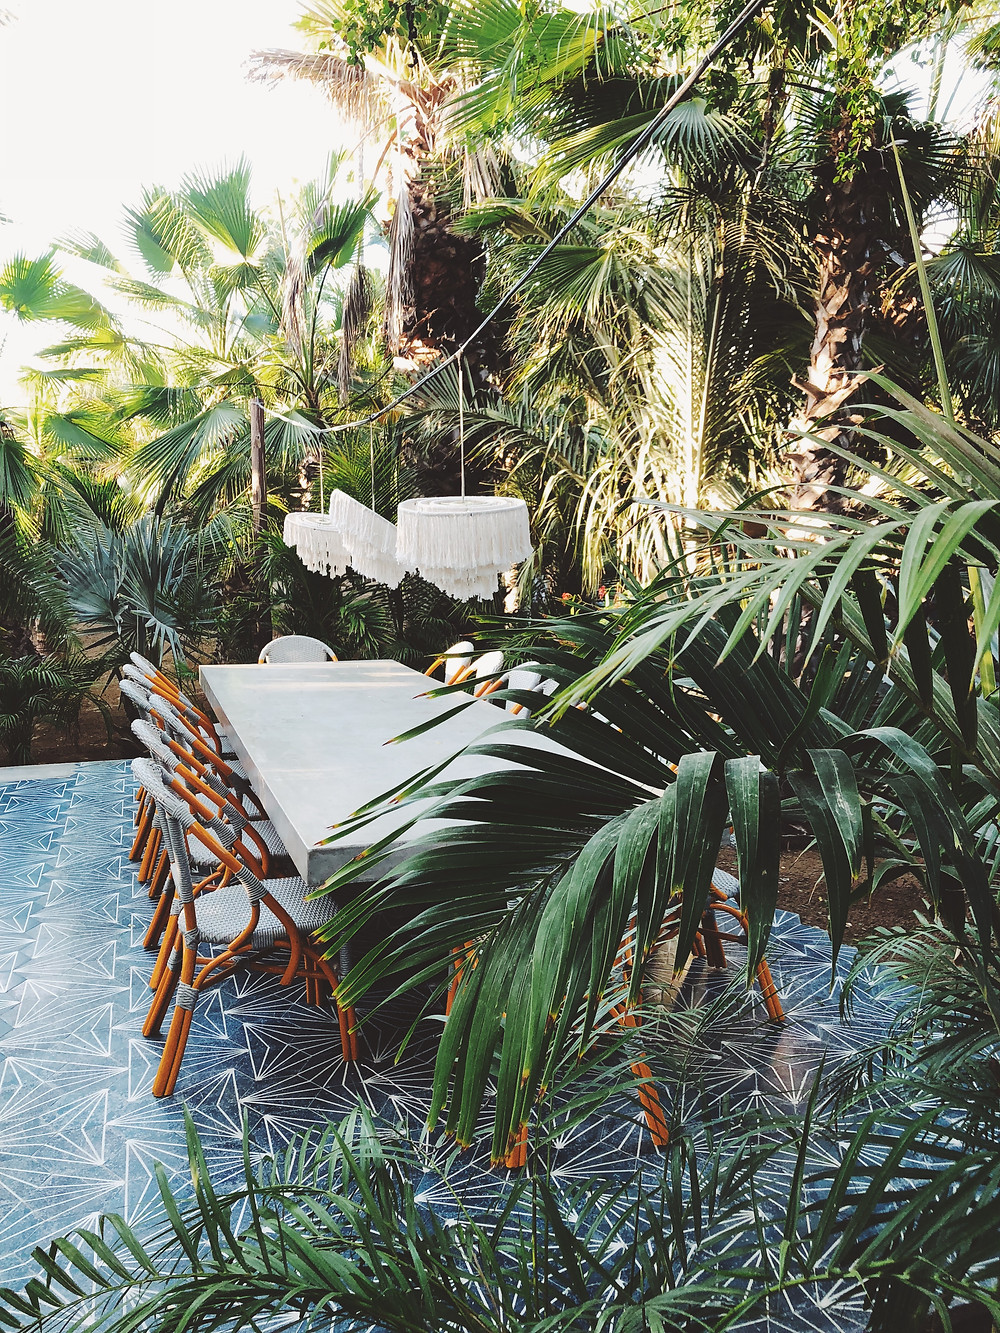 Best Places to Stay in Cabo- Emily Katz Travels Todo Santos Mexico - Cabo Acre Baja